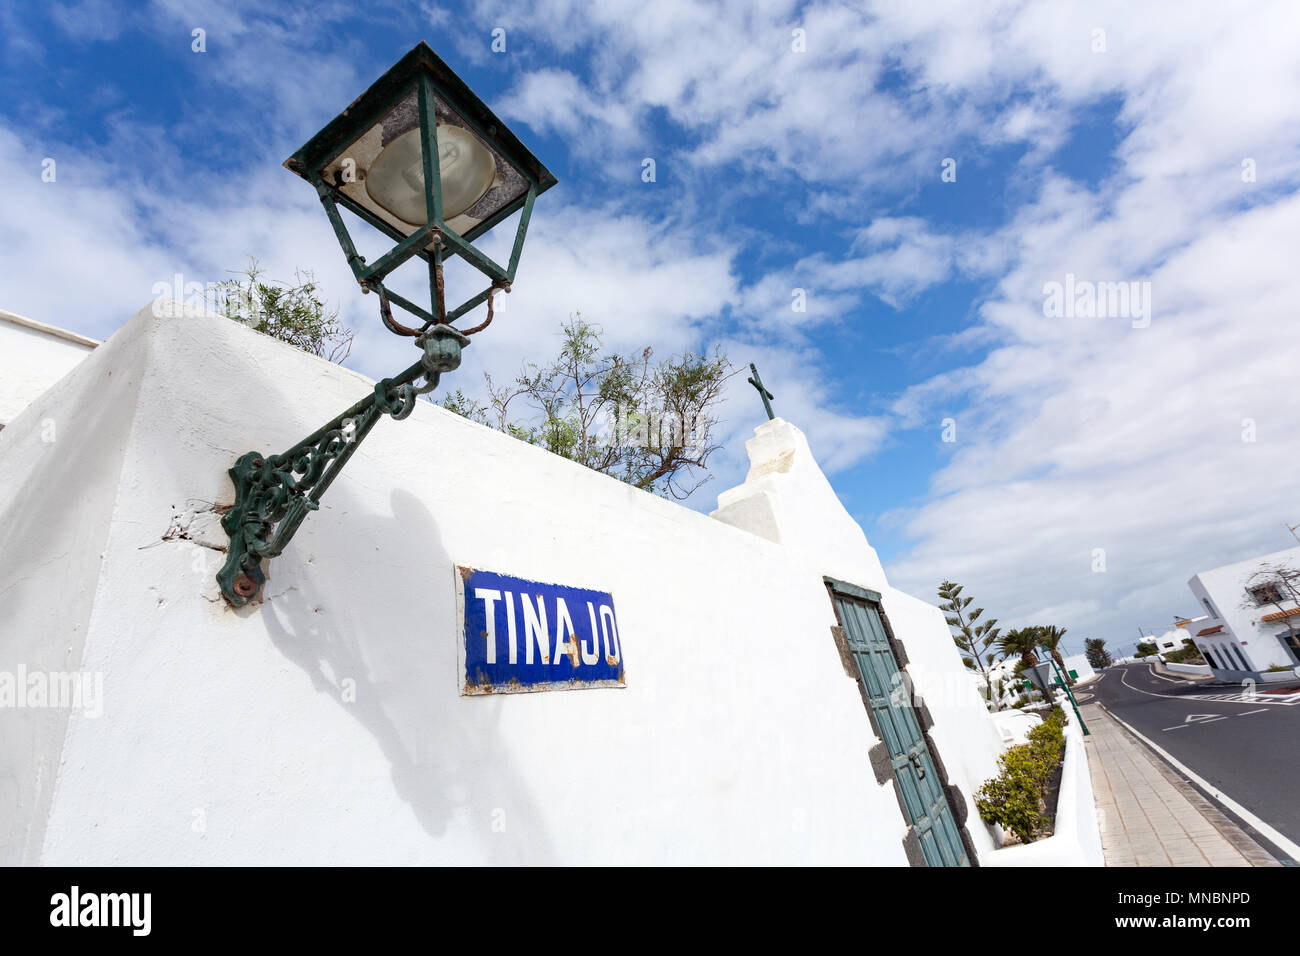 TINAJO, LANZAROTE, CANARY ISLANDS, SPAIN: Tinajo village sign and a classic lantern on a white wall with a palm tree. Stock Photo